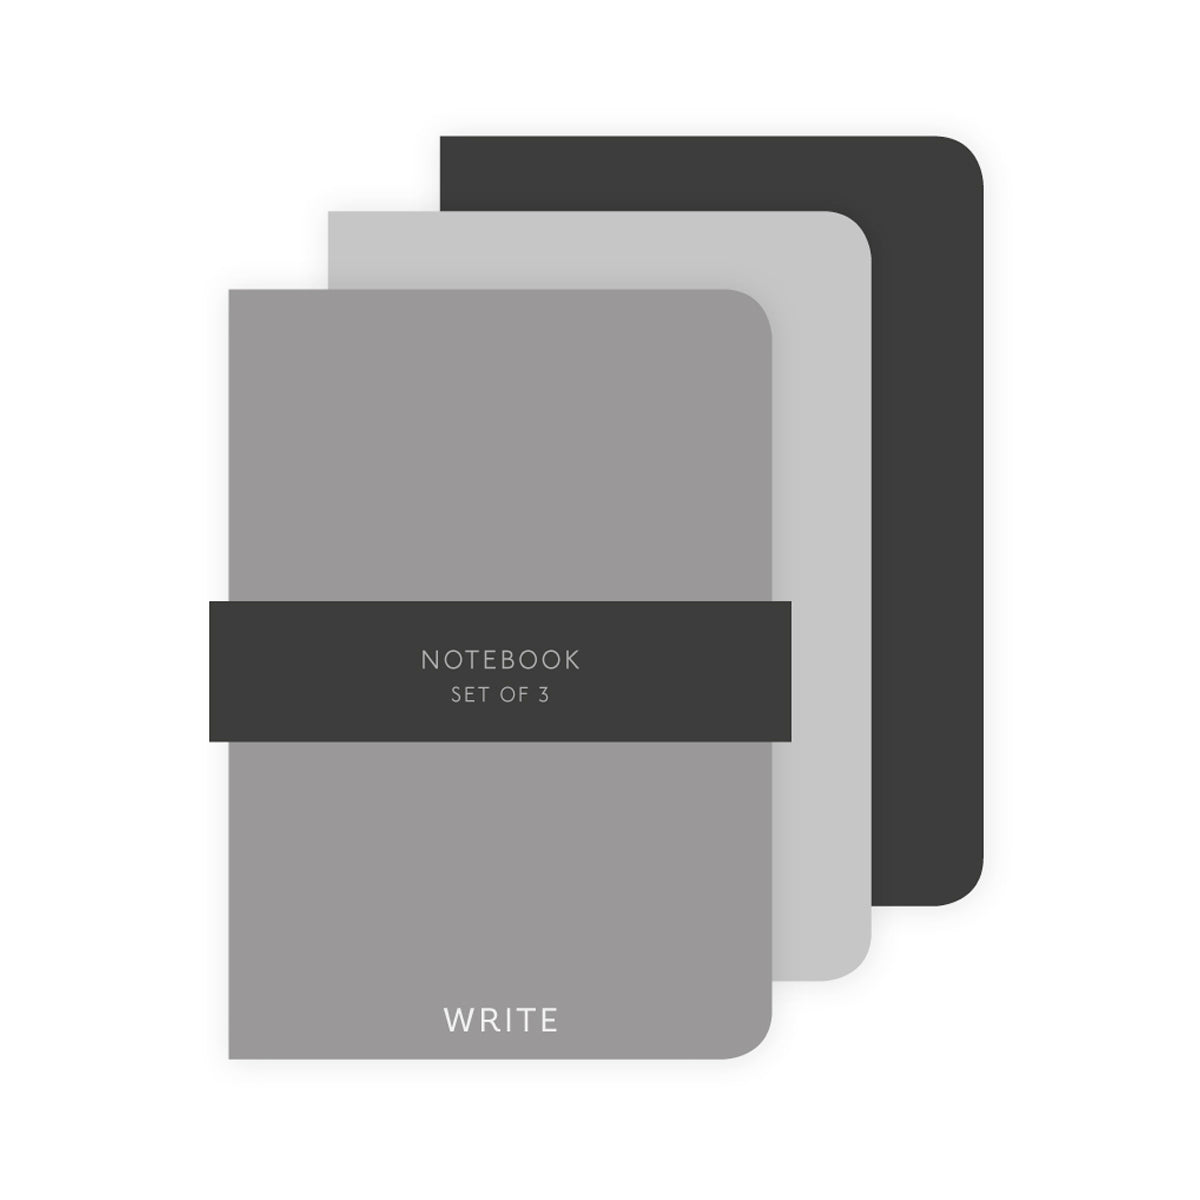 STYLISH & CLASSIC Set of 3 A5 Notebook - Grey